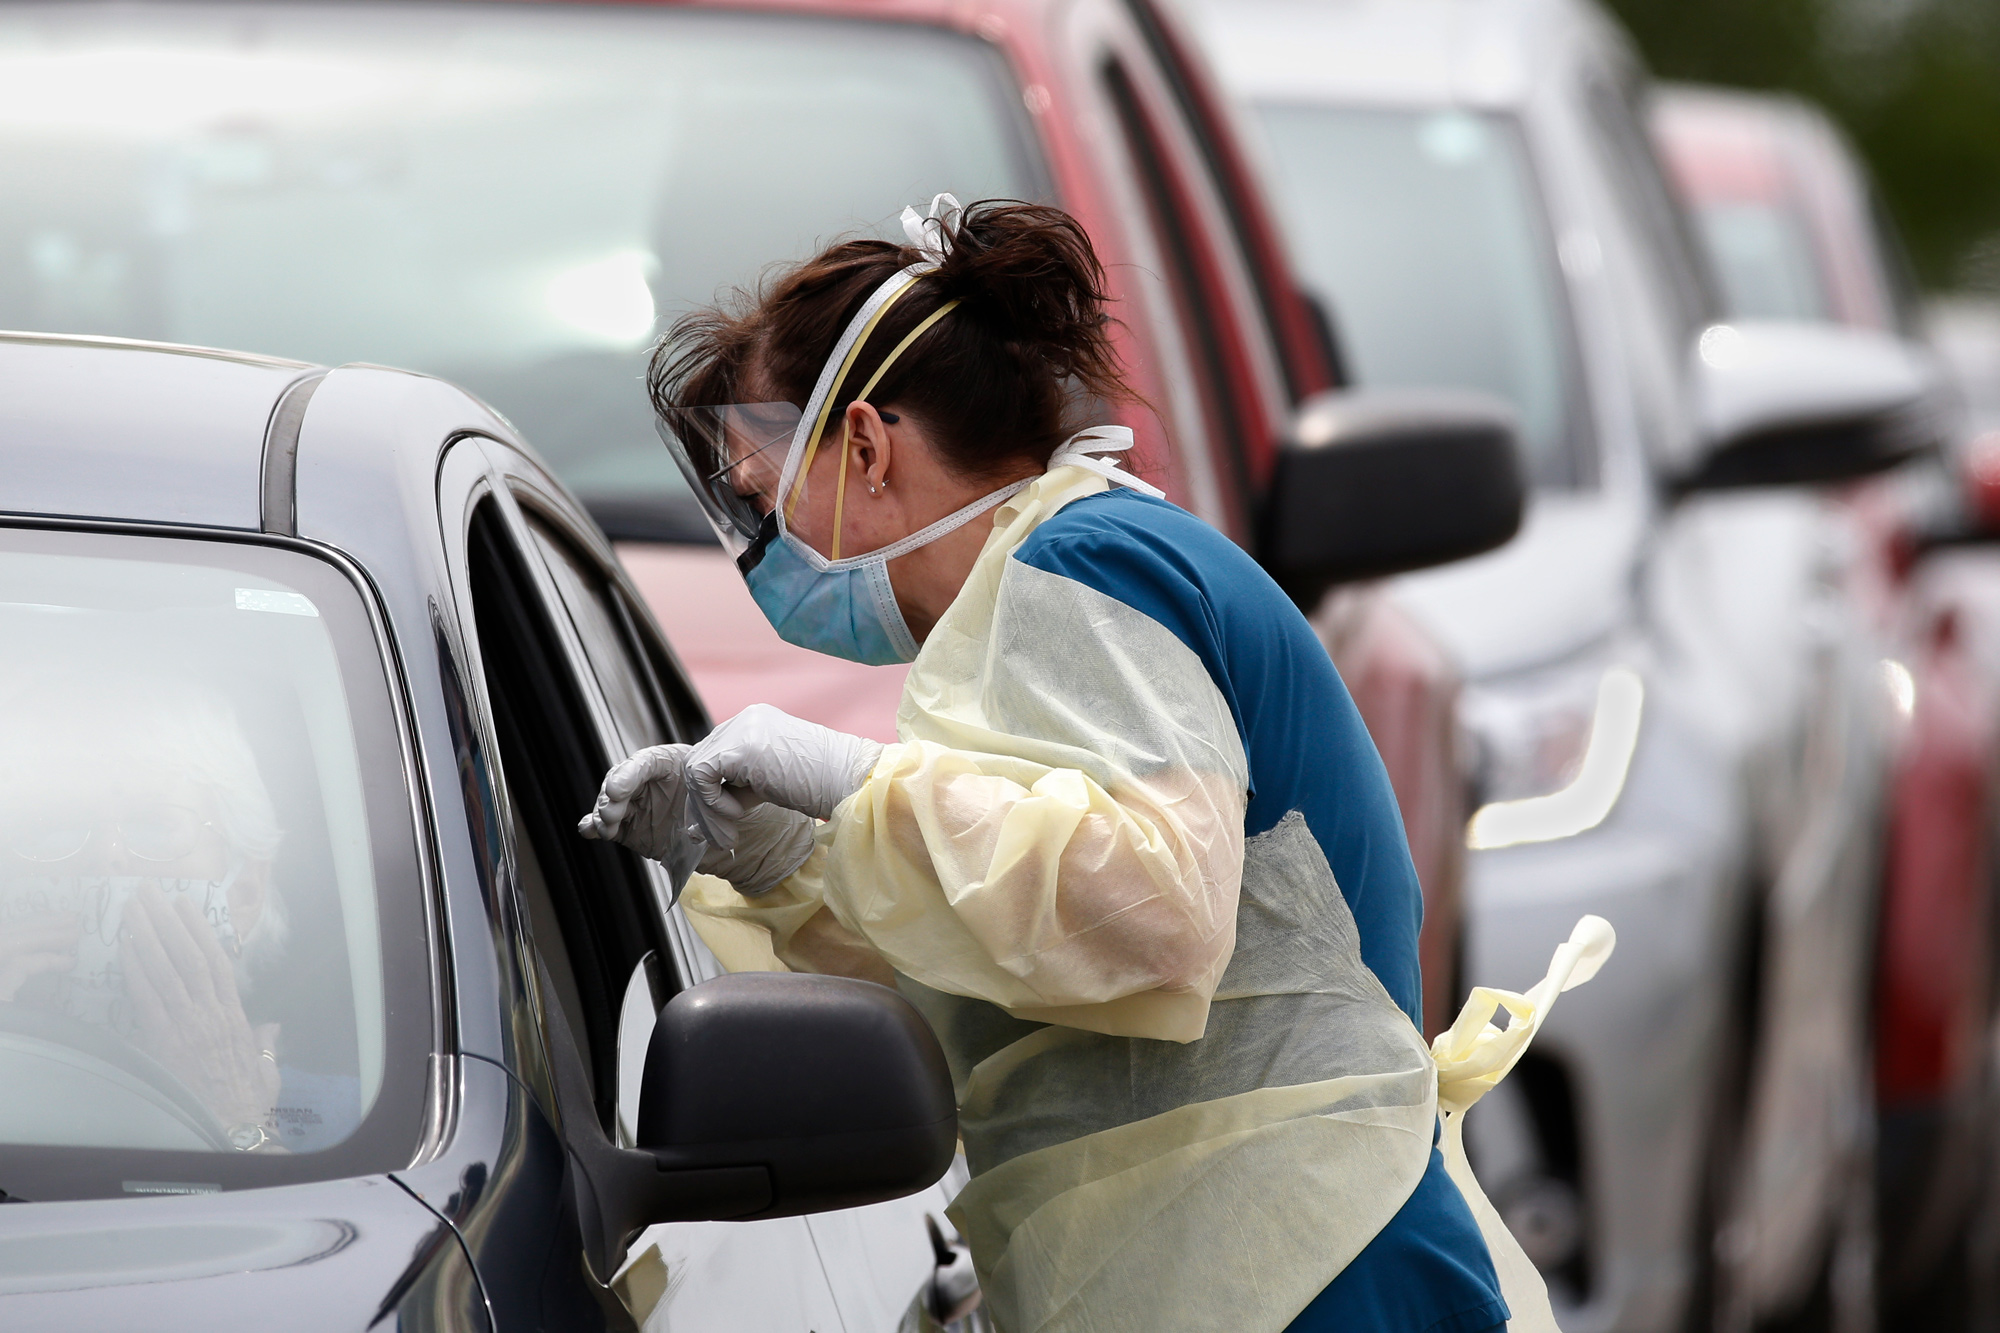 A Cleveland County Health Department employee speaks to a driver of a car at a mobile testing site for COVID-19 in Norman, Oklahoma on April 9.